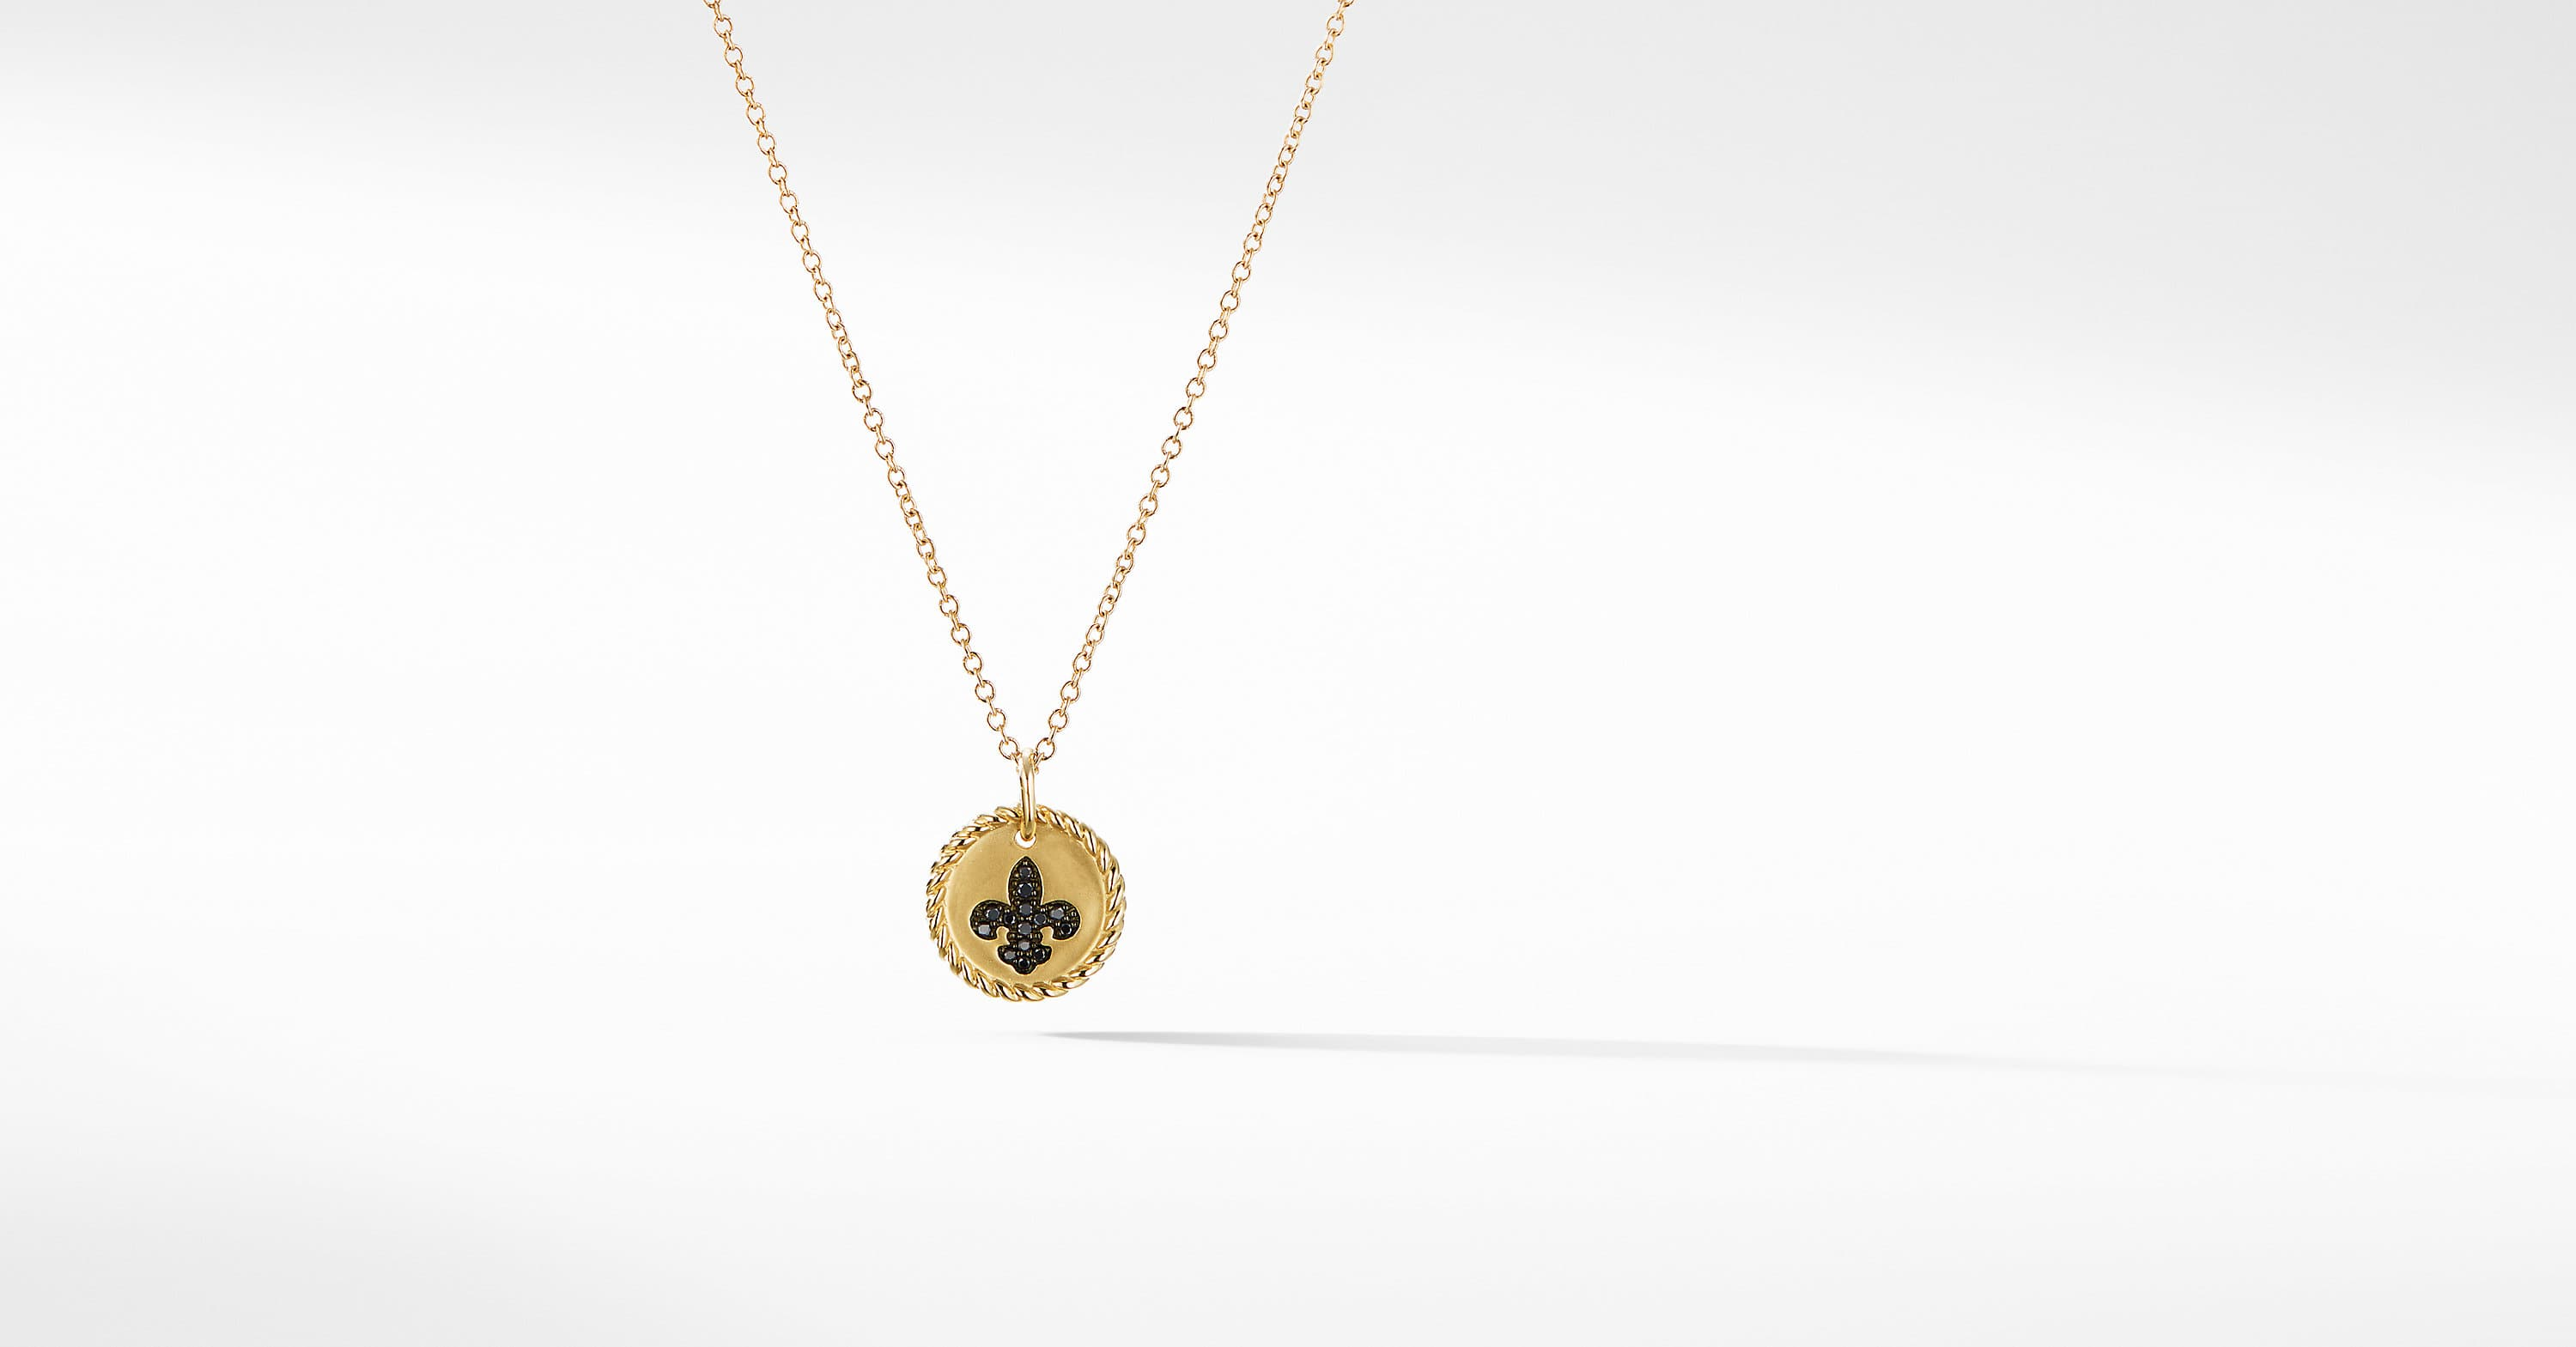 Cable Collectibles Fleur de Lis Necklace in 18K Gold